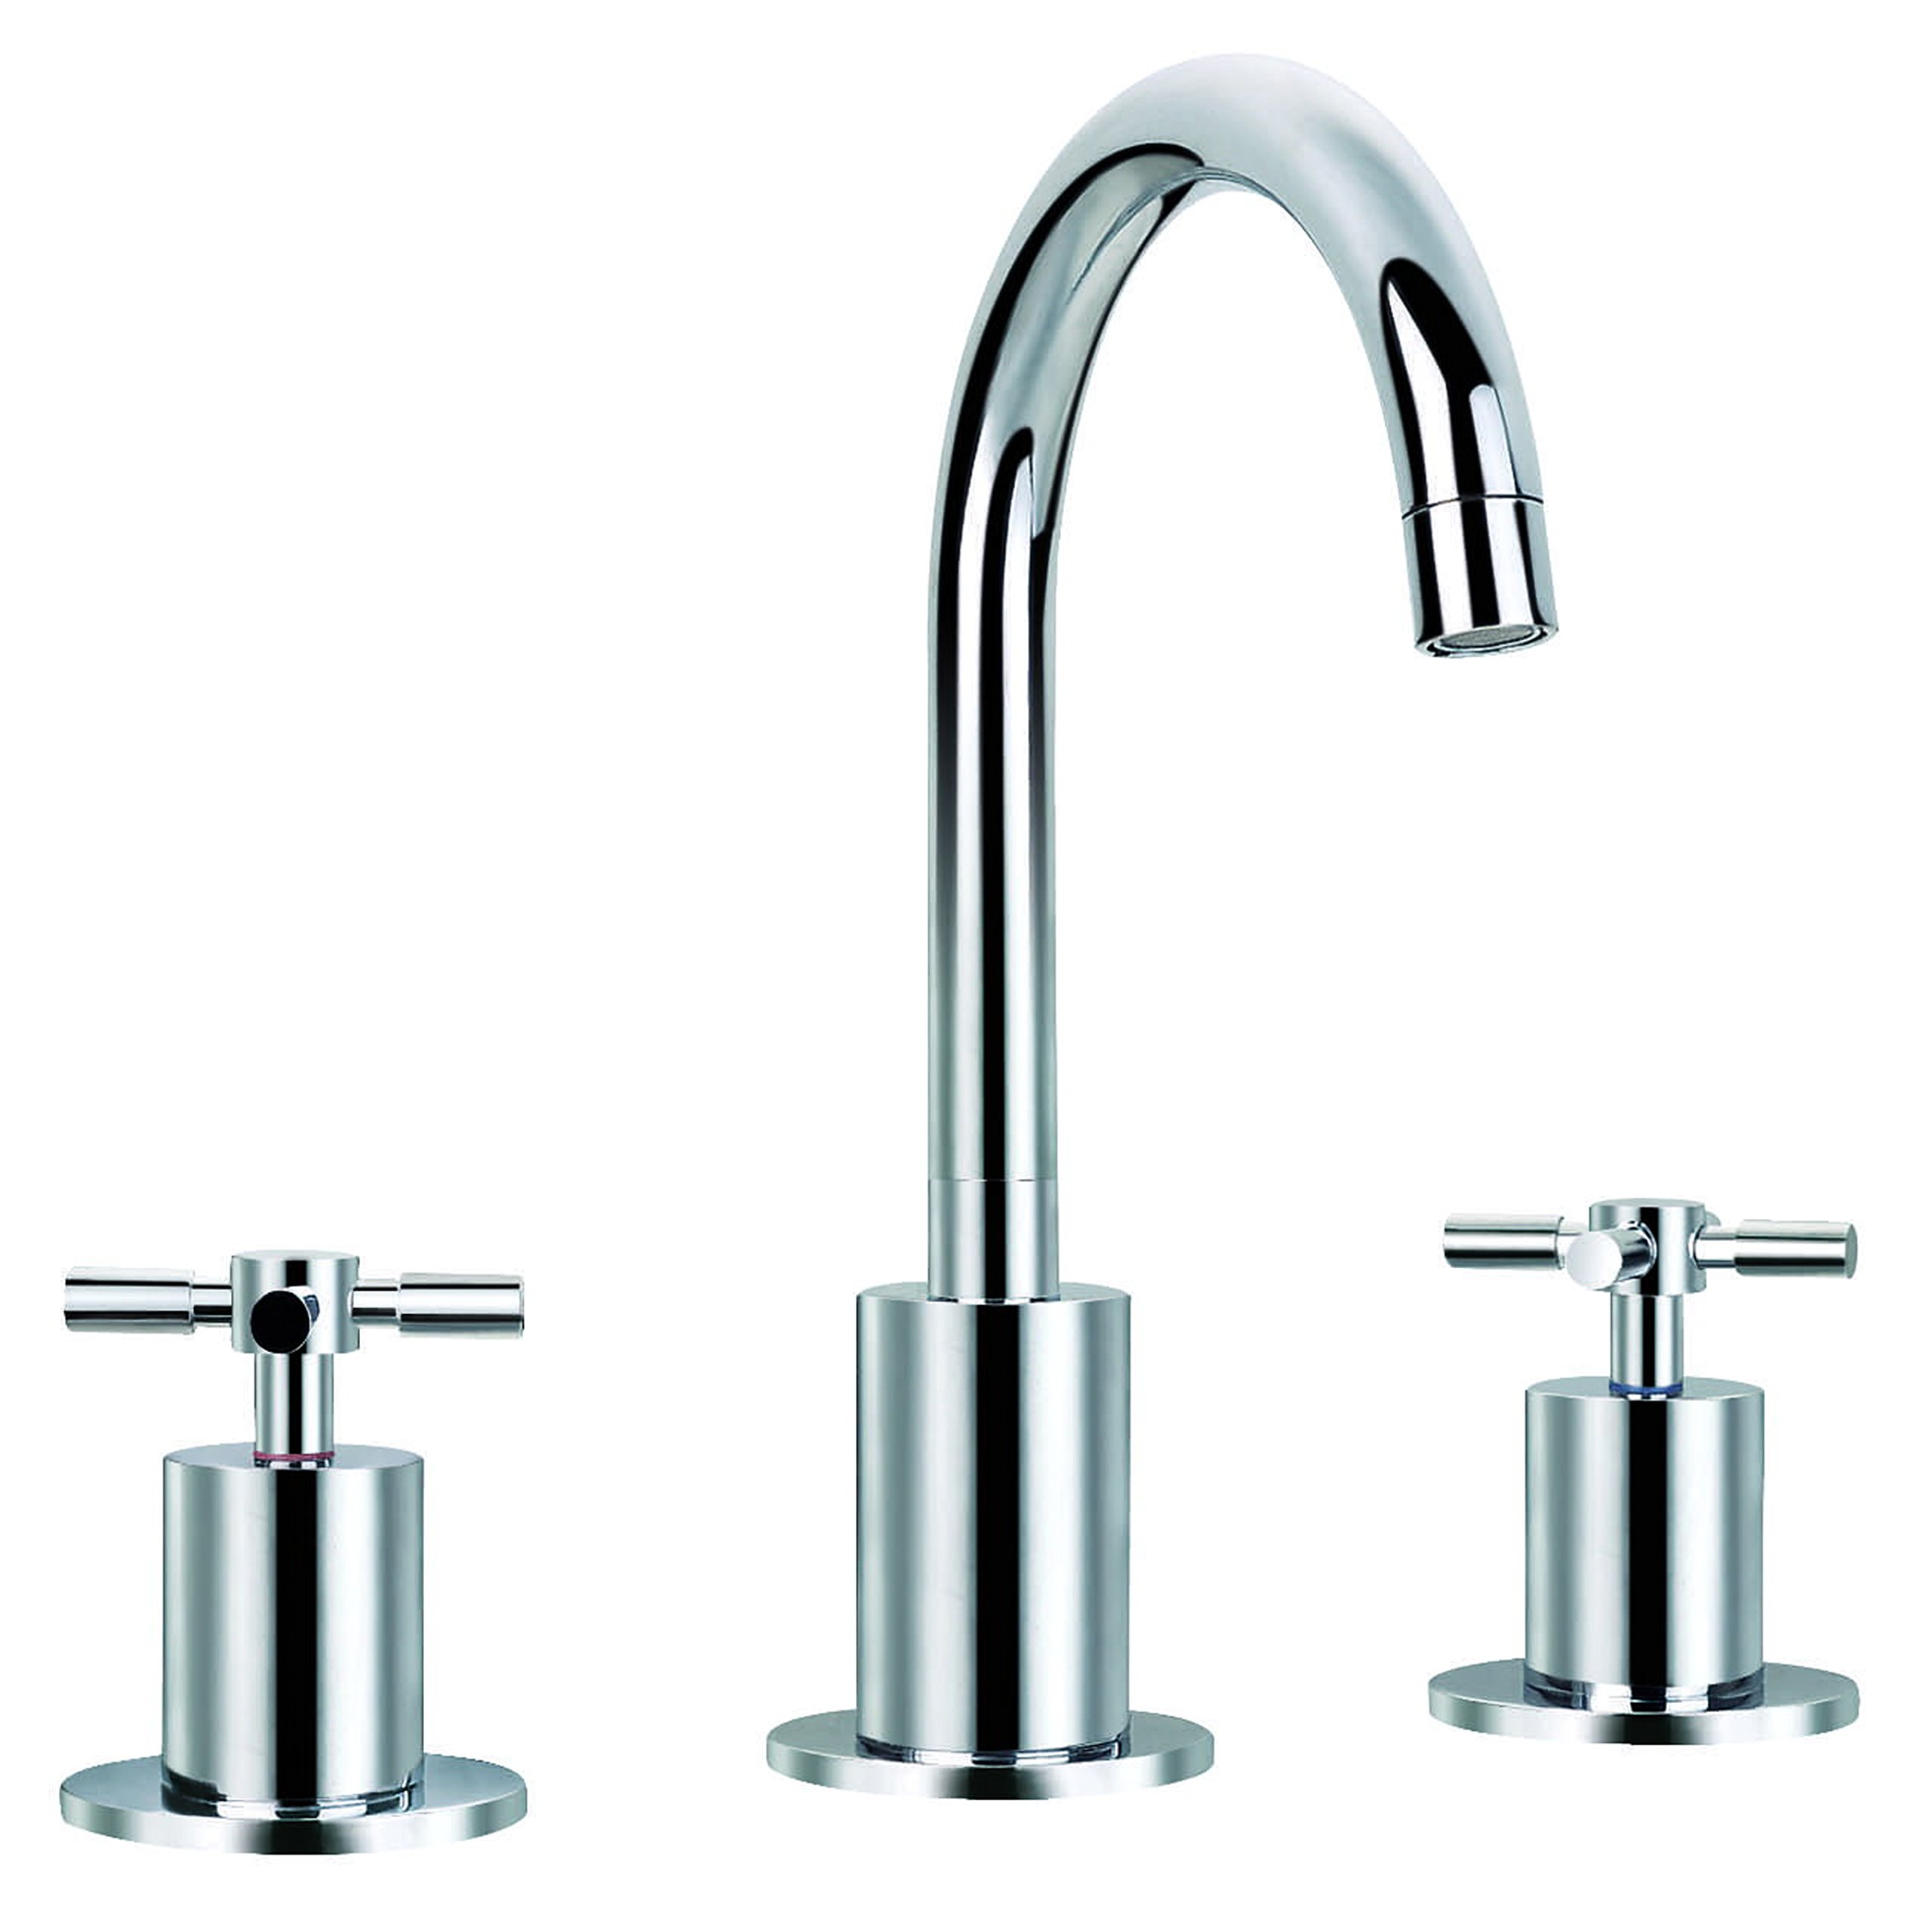 Ancona Prima Chrome 3 Bathroom Sink Faucet with 3-hole Installation by Ancona